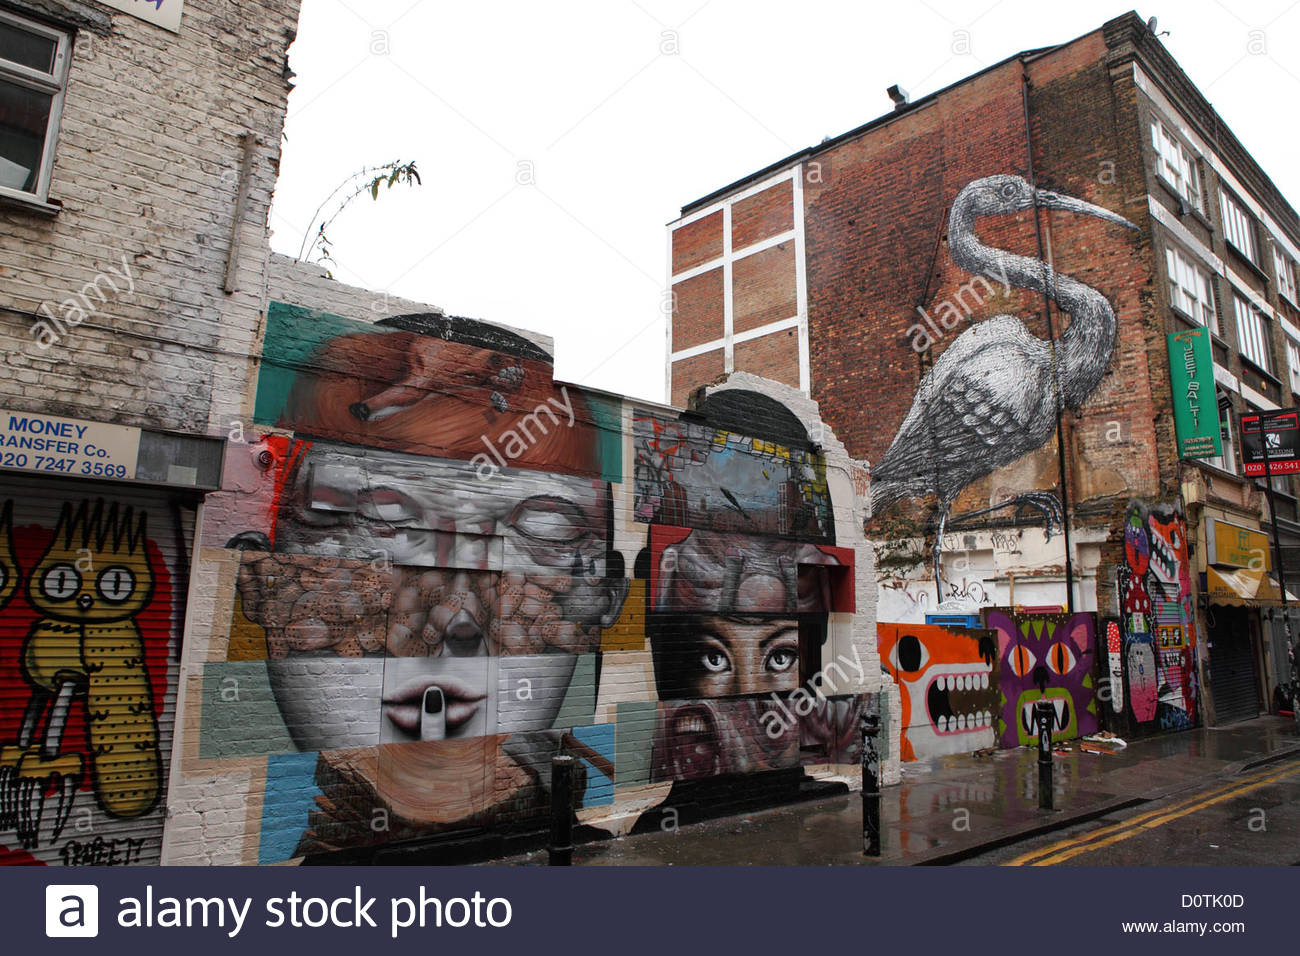 Brick Lane London, Graffiti and urban art off Brick Lane, London, England. The area ...